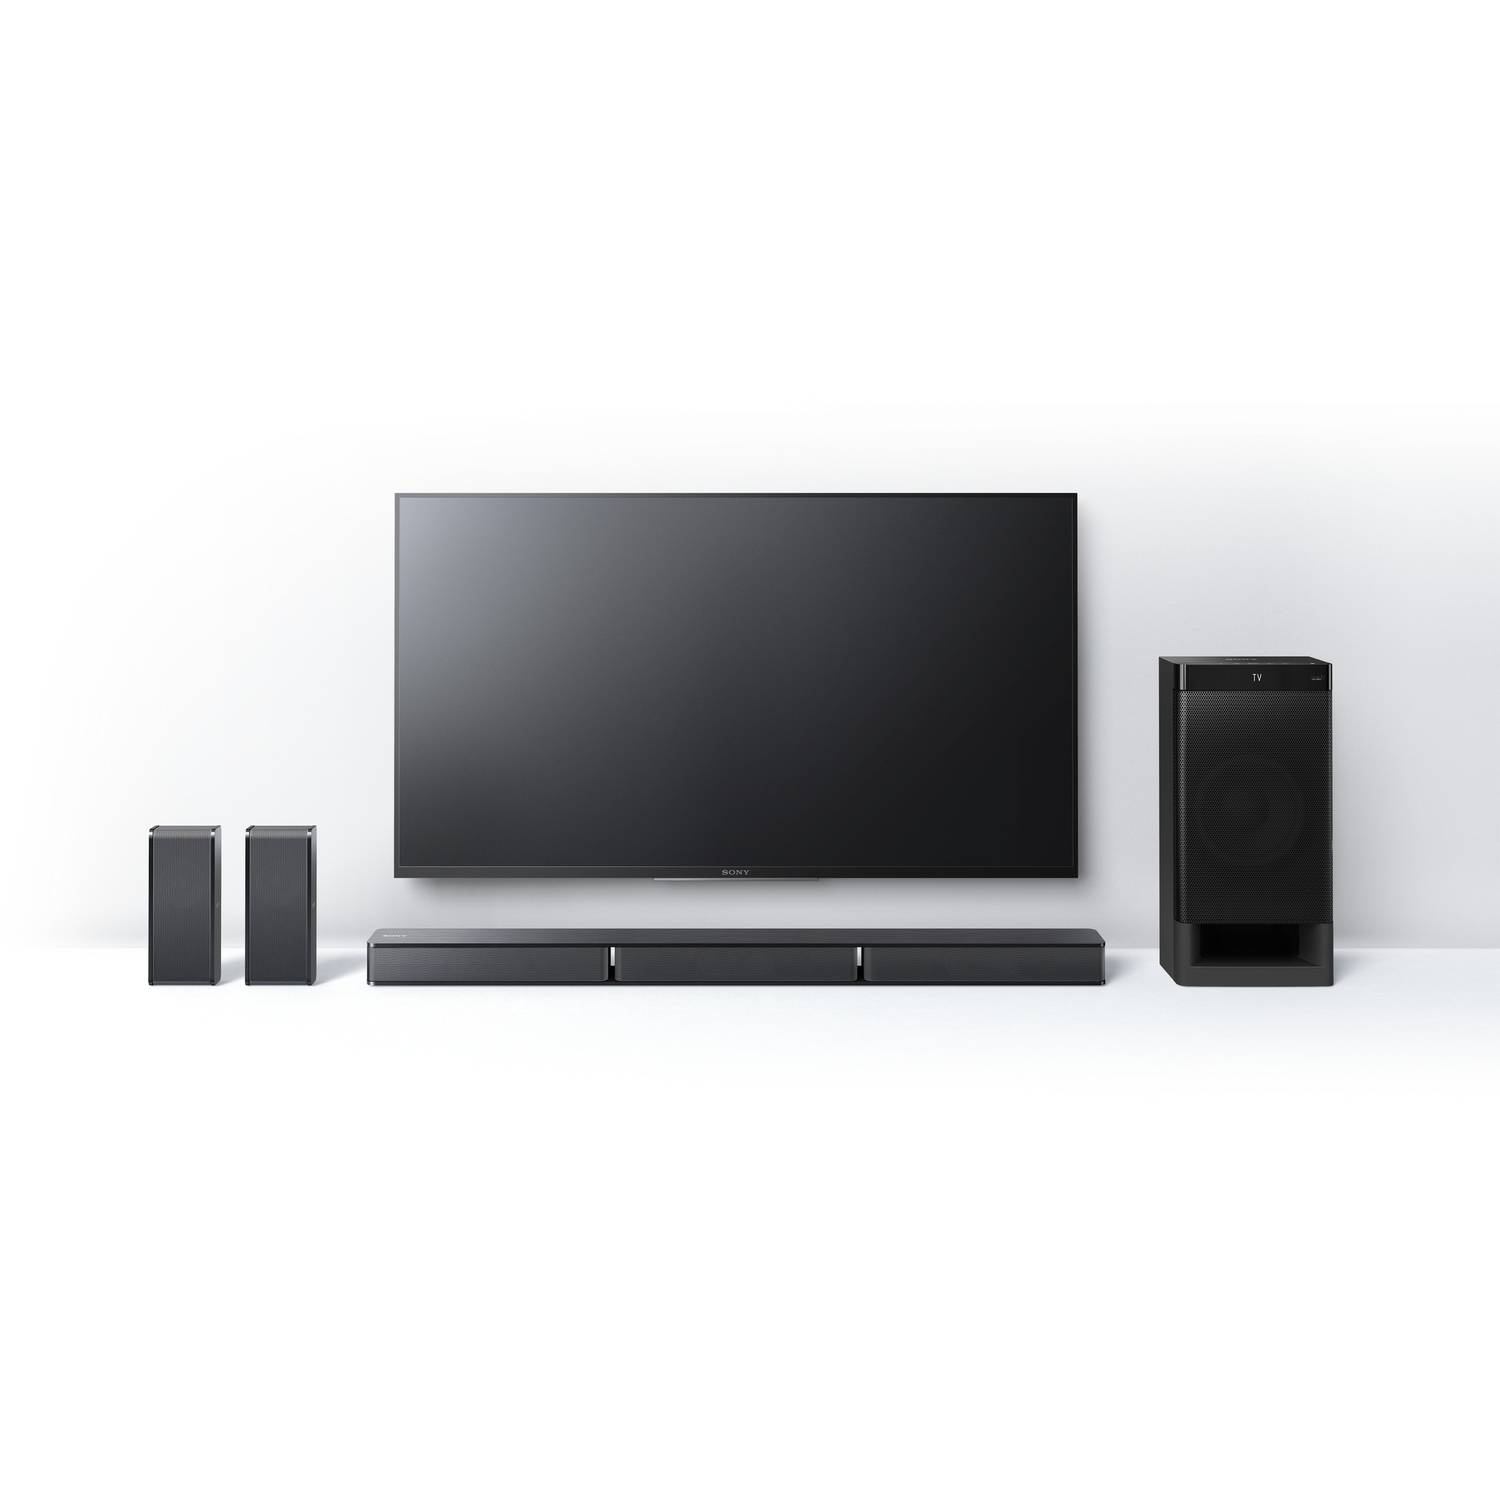 Sony Sound Bar Installation Diagrams Electrical Wiring Ct100 Diagram Refurbished Htrt3 5 1 Channel Home Theater With Ht